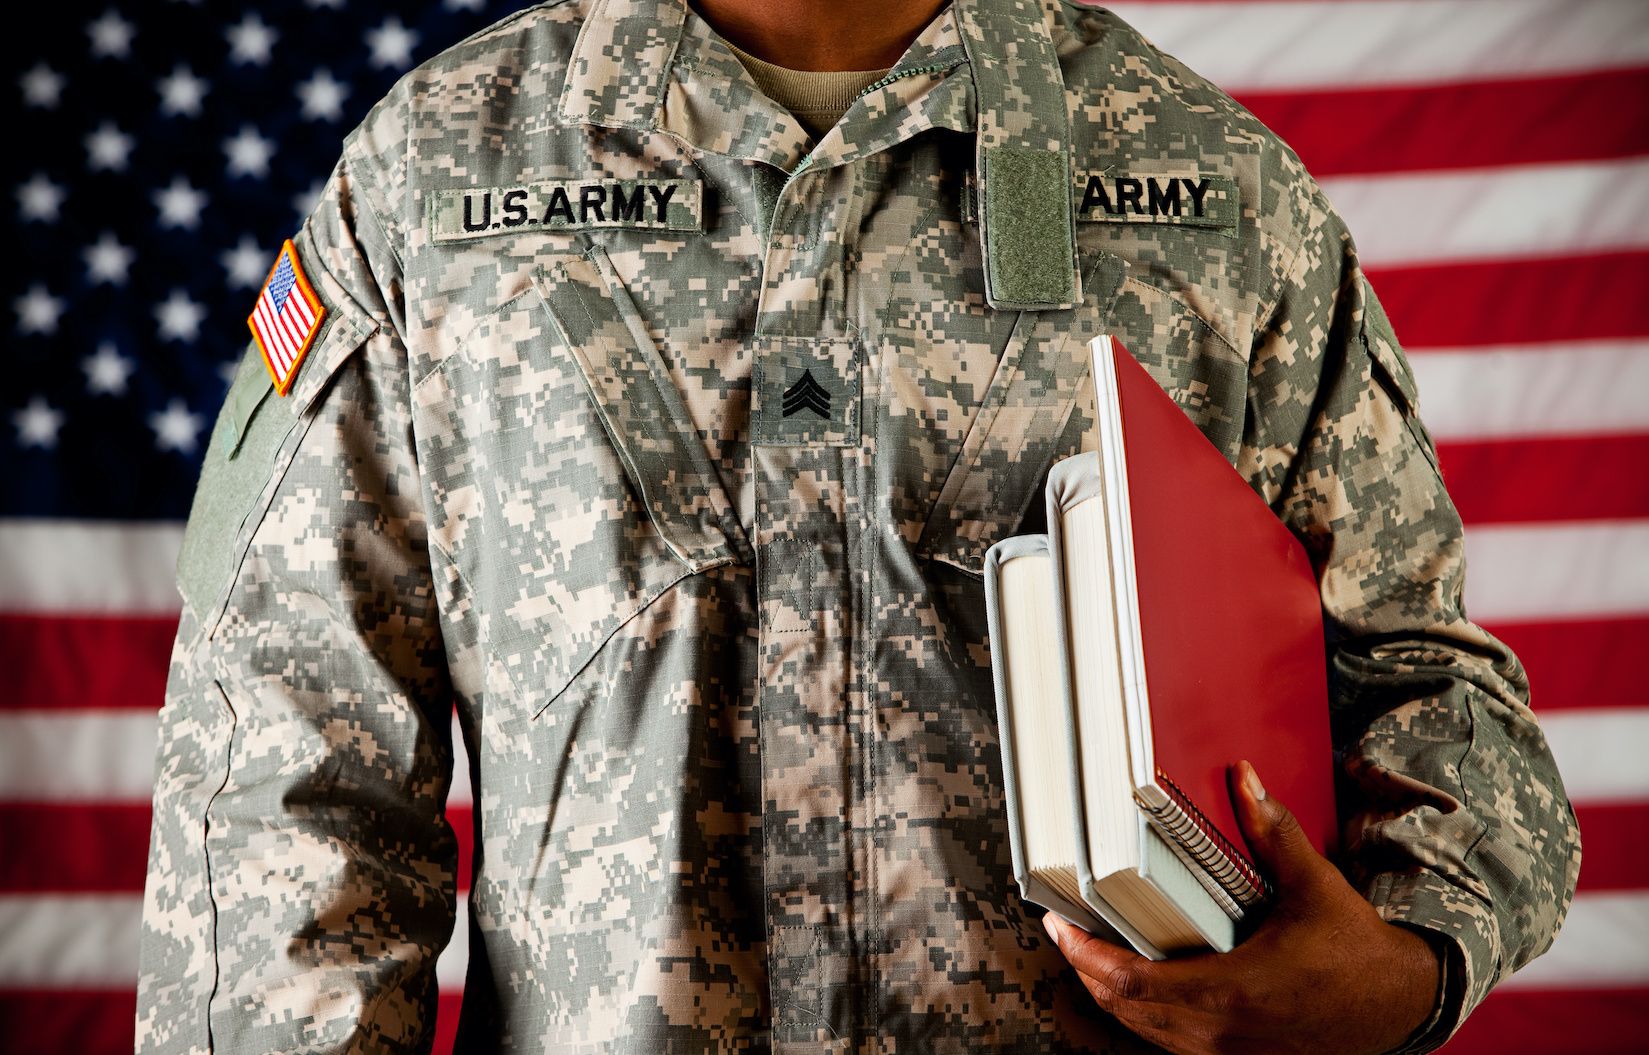 Soldiering On: Godly Principles Armor Young Man with Resilience